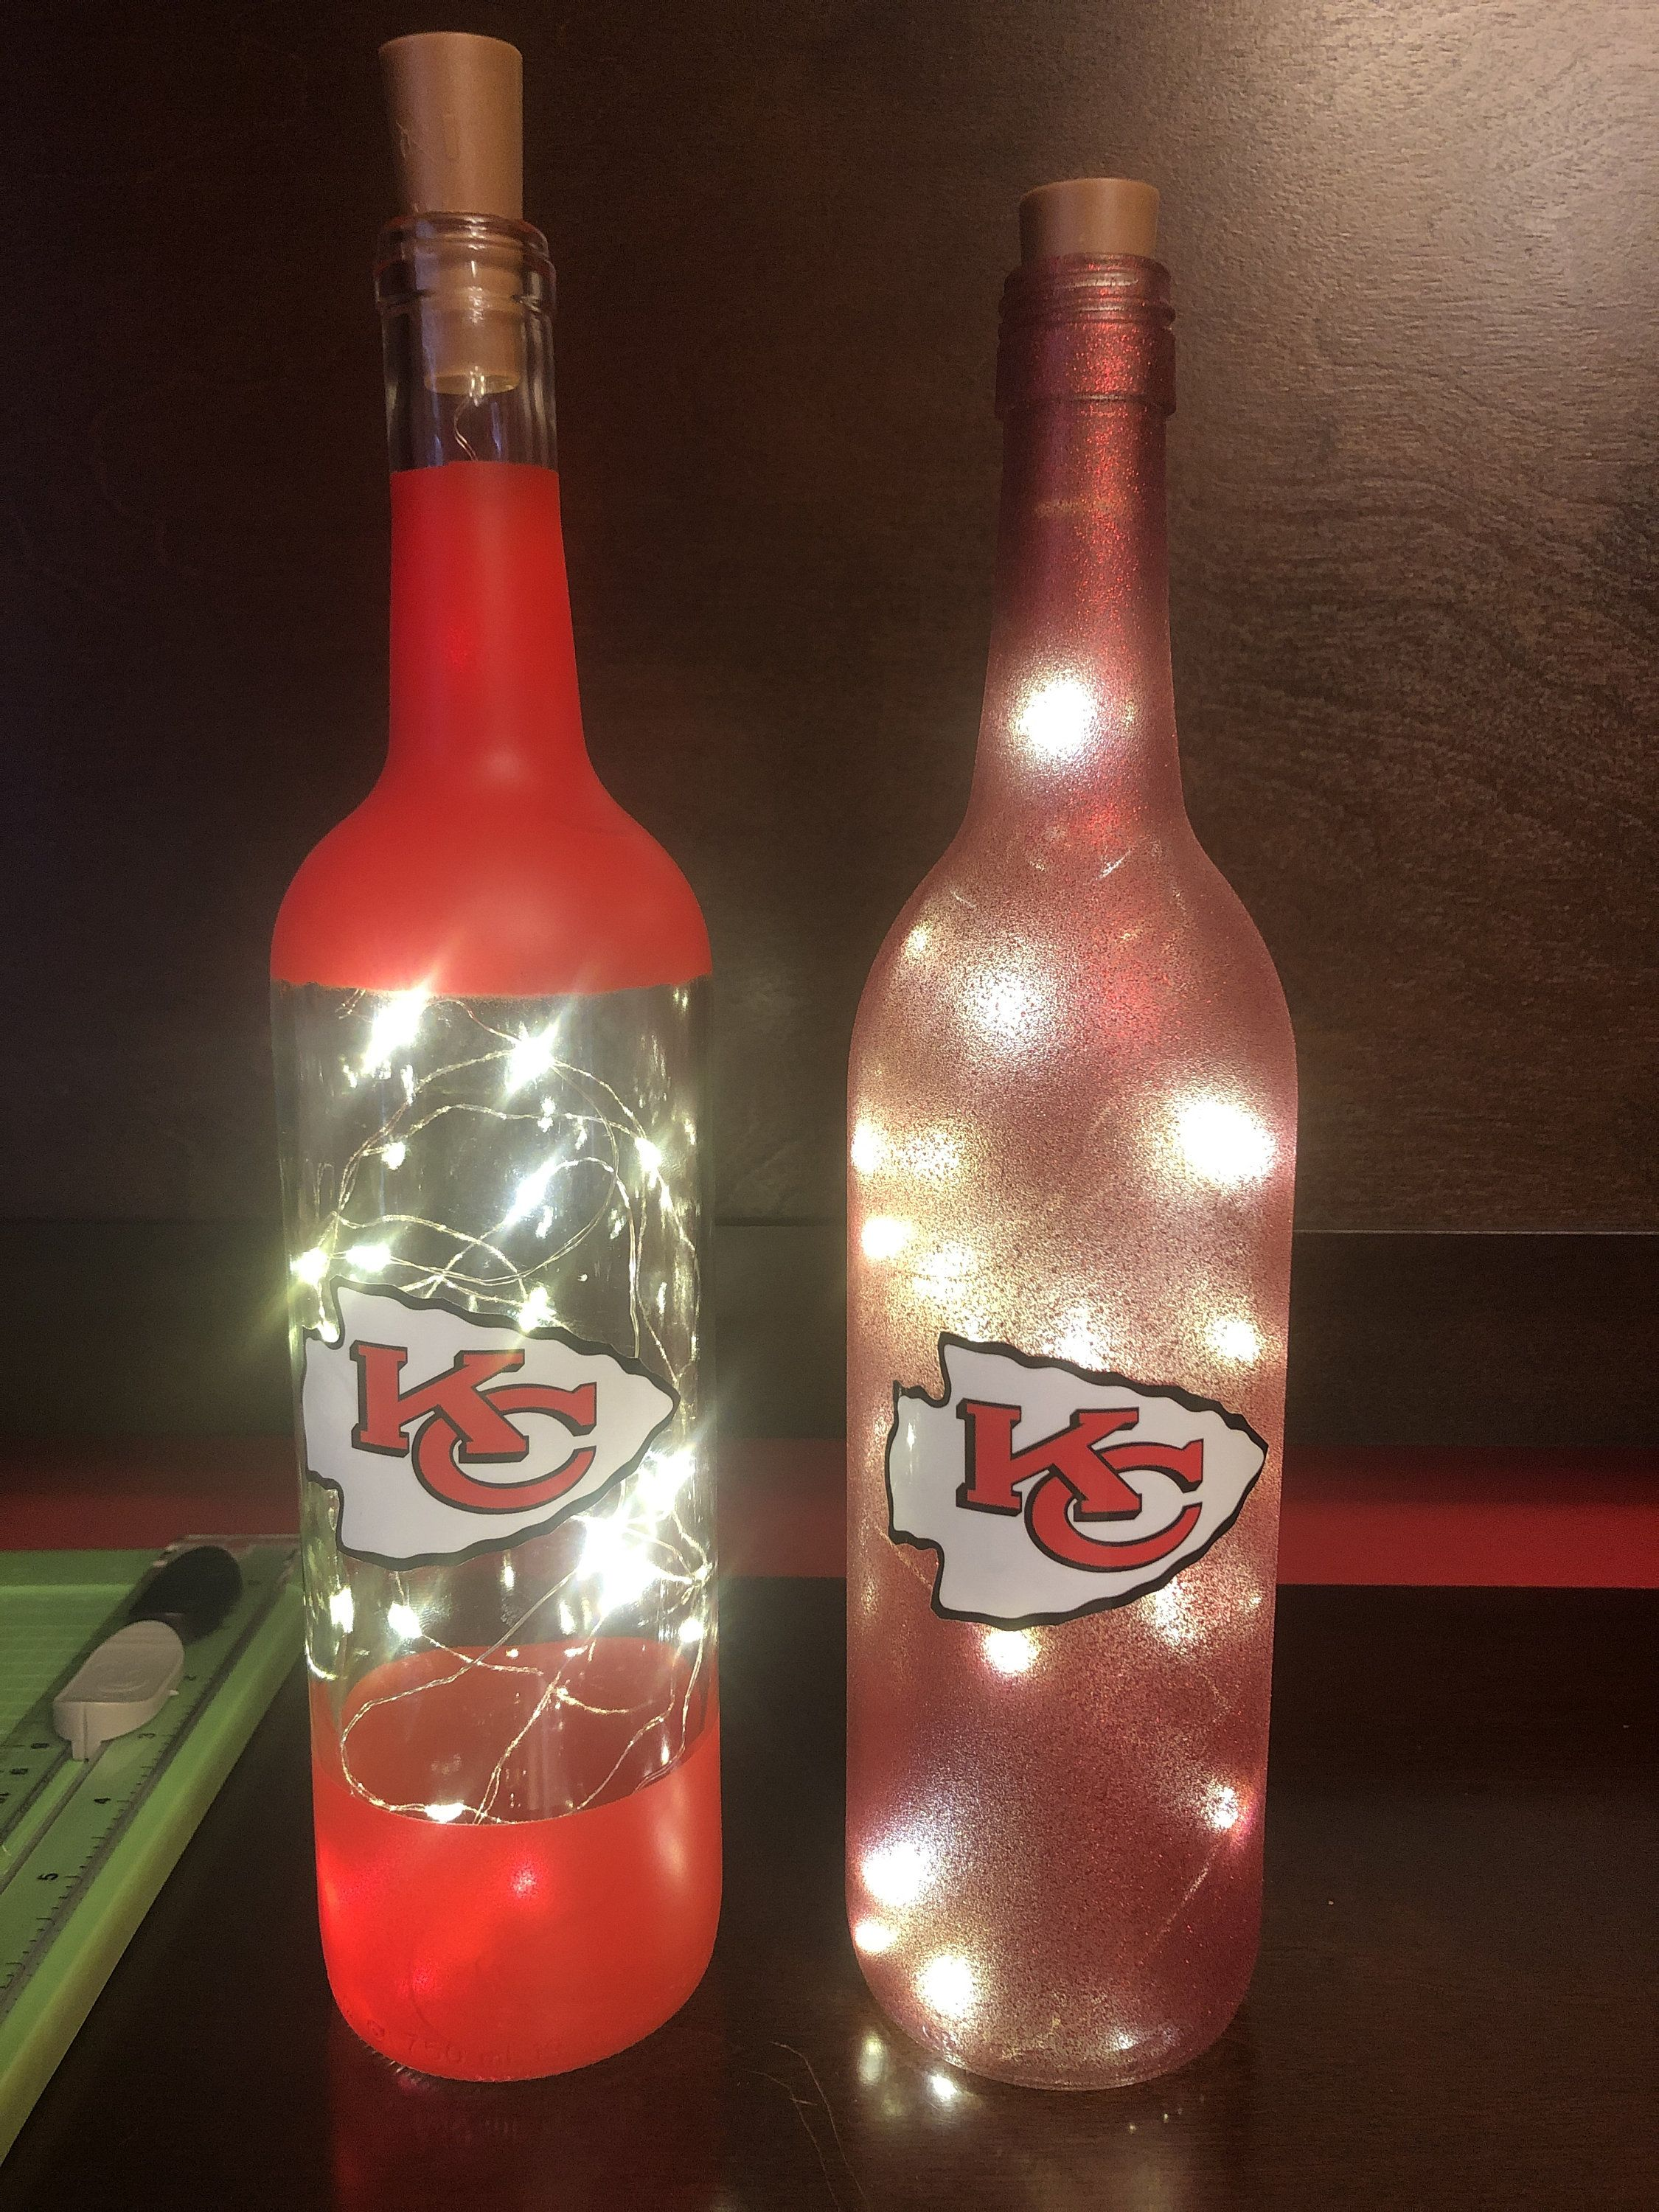 Superbowl Champion Kc Chiefs Lighted Bottle Red Glitter Etsy In 2020 Wine Bottle Crafts Christmas Wine Bottle Diy Crafts Recycled Bottle Crafts